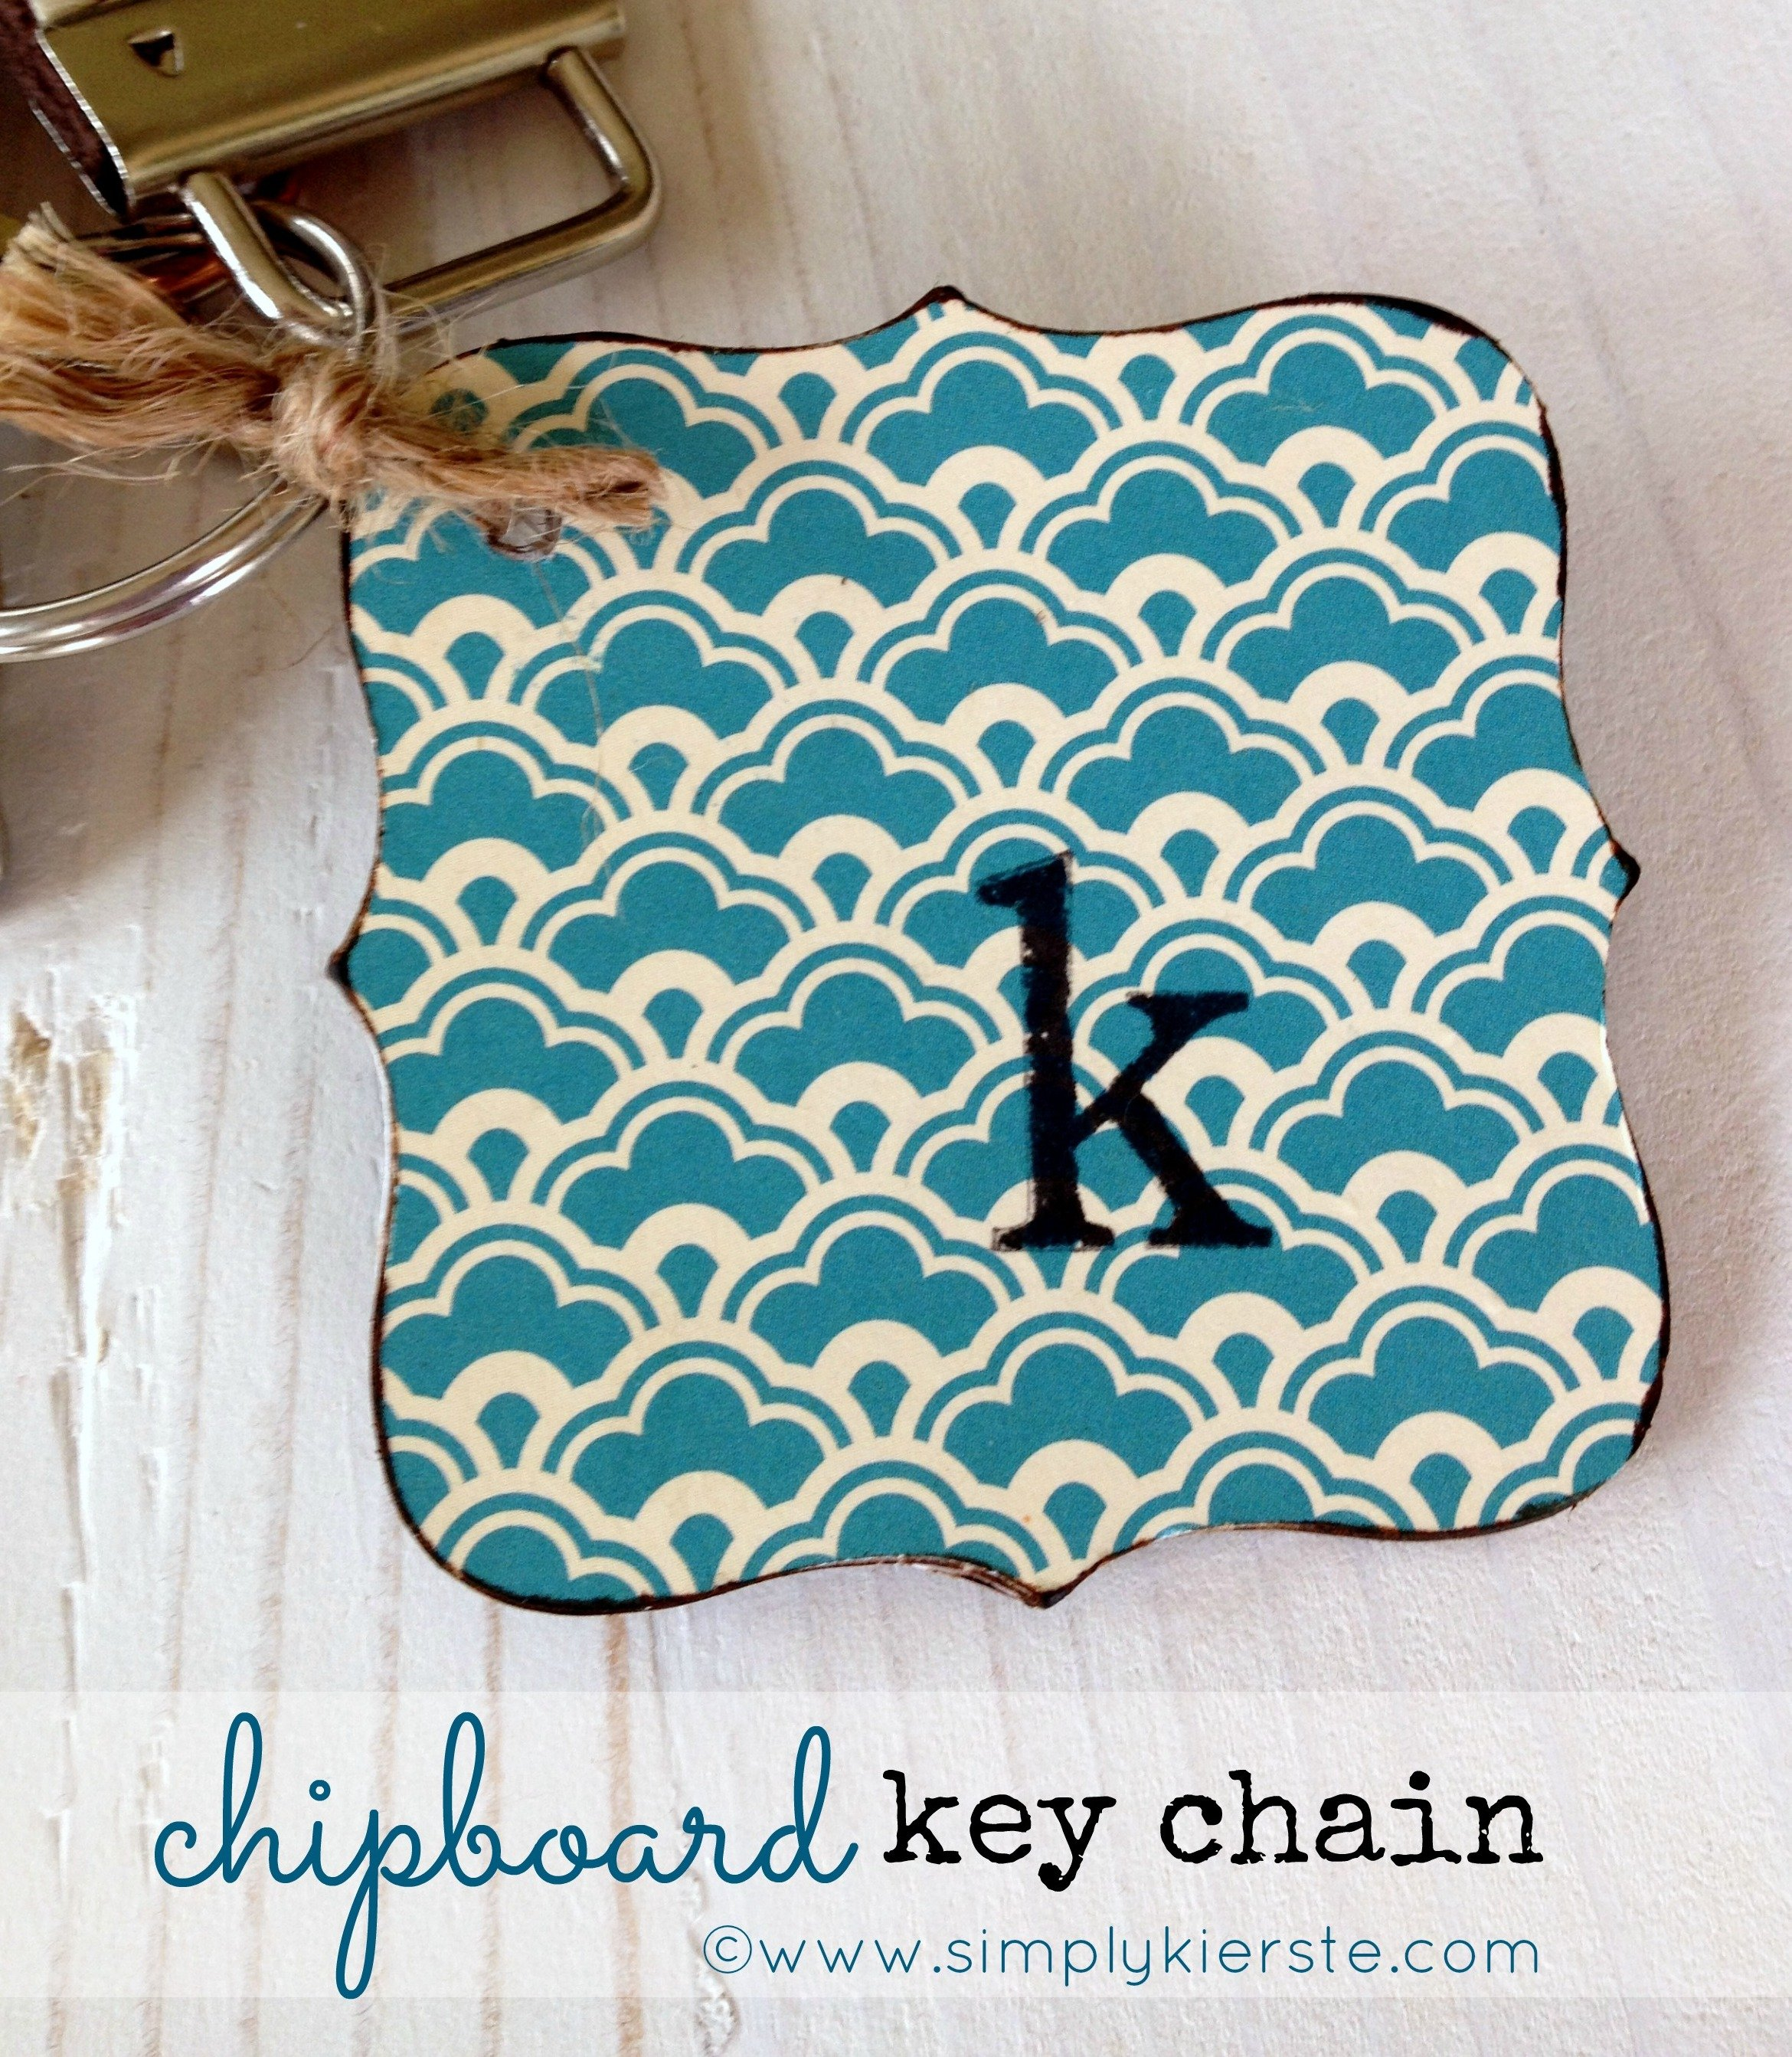 chipboard key chain | simplykierste.com